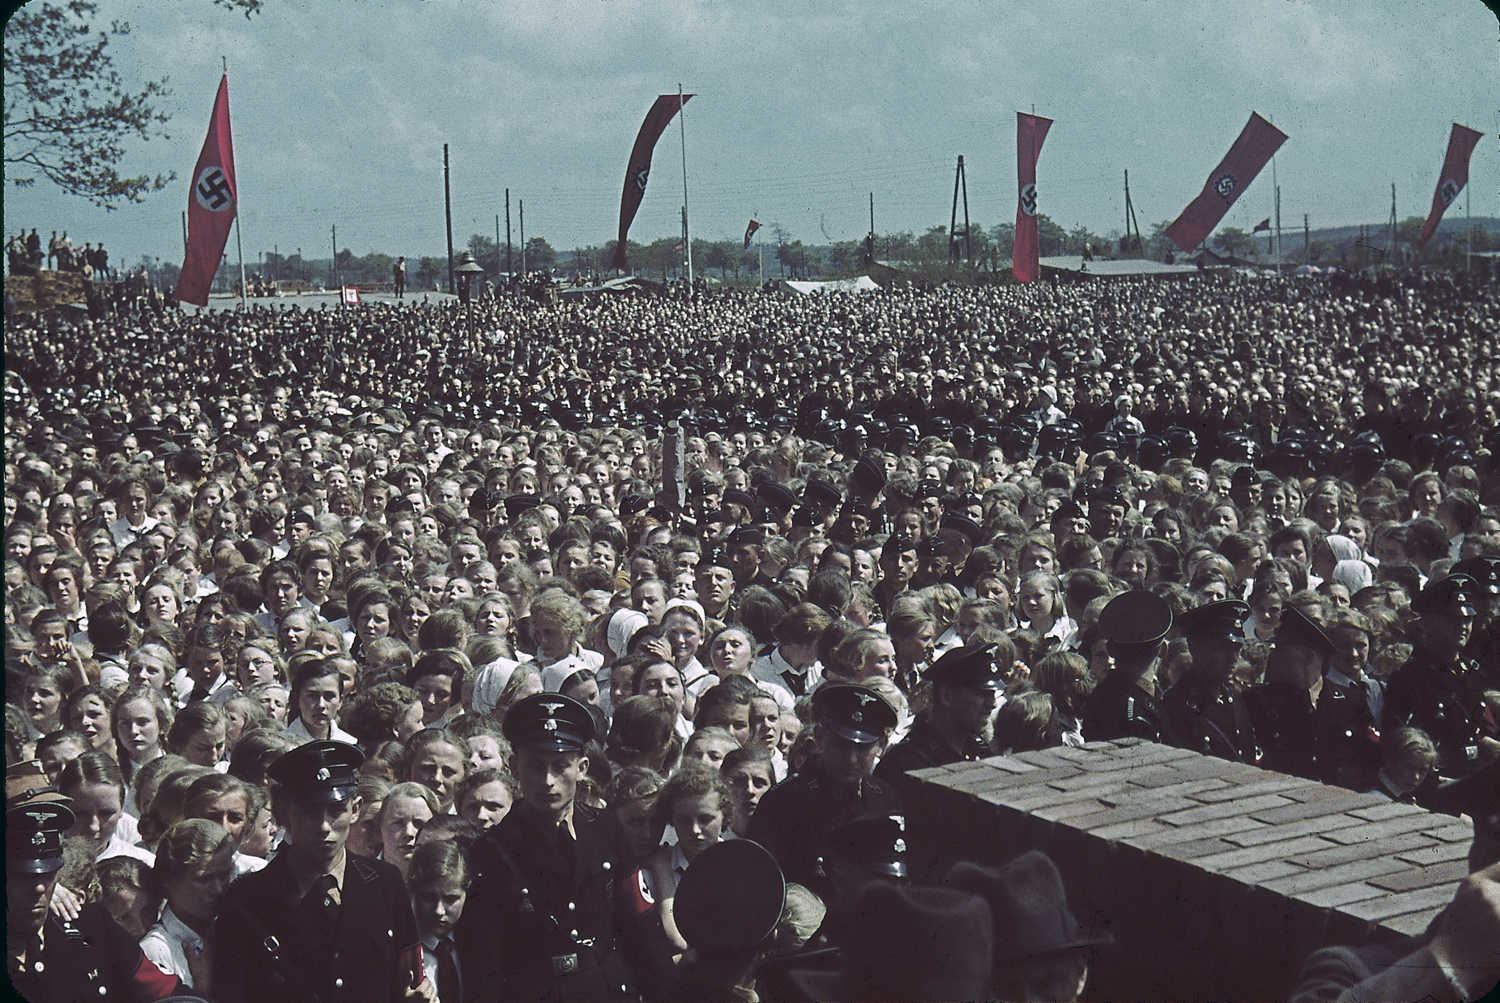 Crowds greet a saluting Adolf Hitler at a cornerstone ceremony at a Volkswagen factory, 1938.